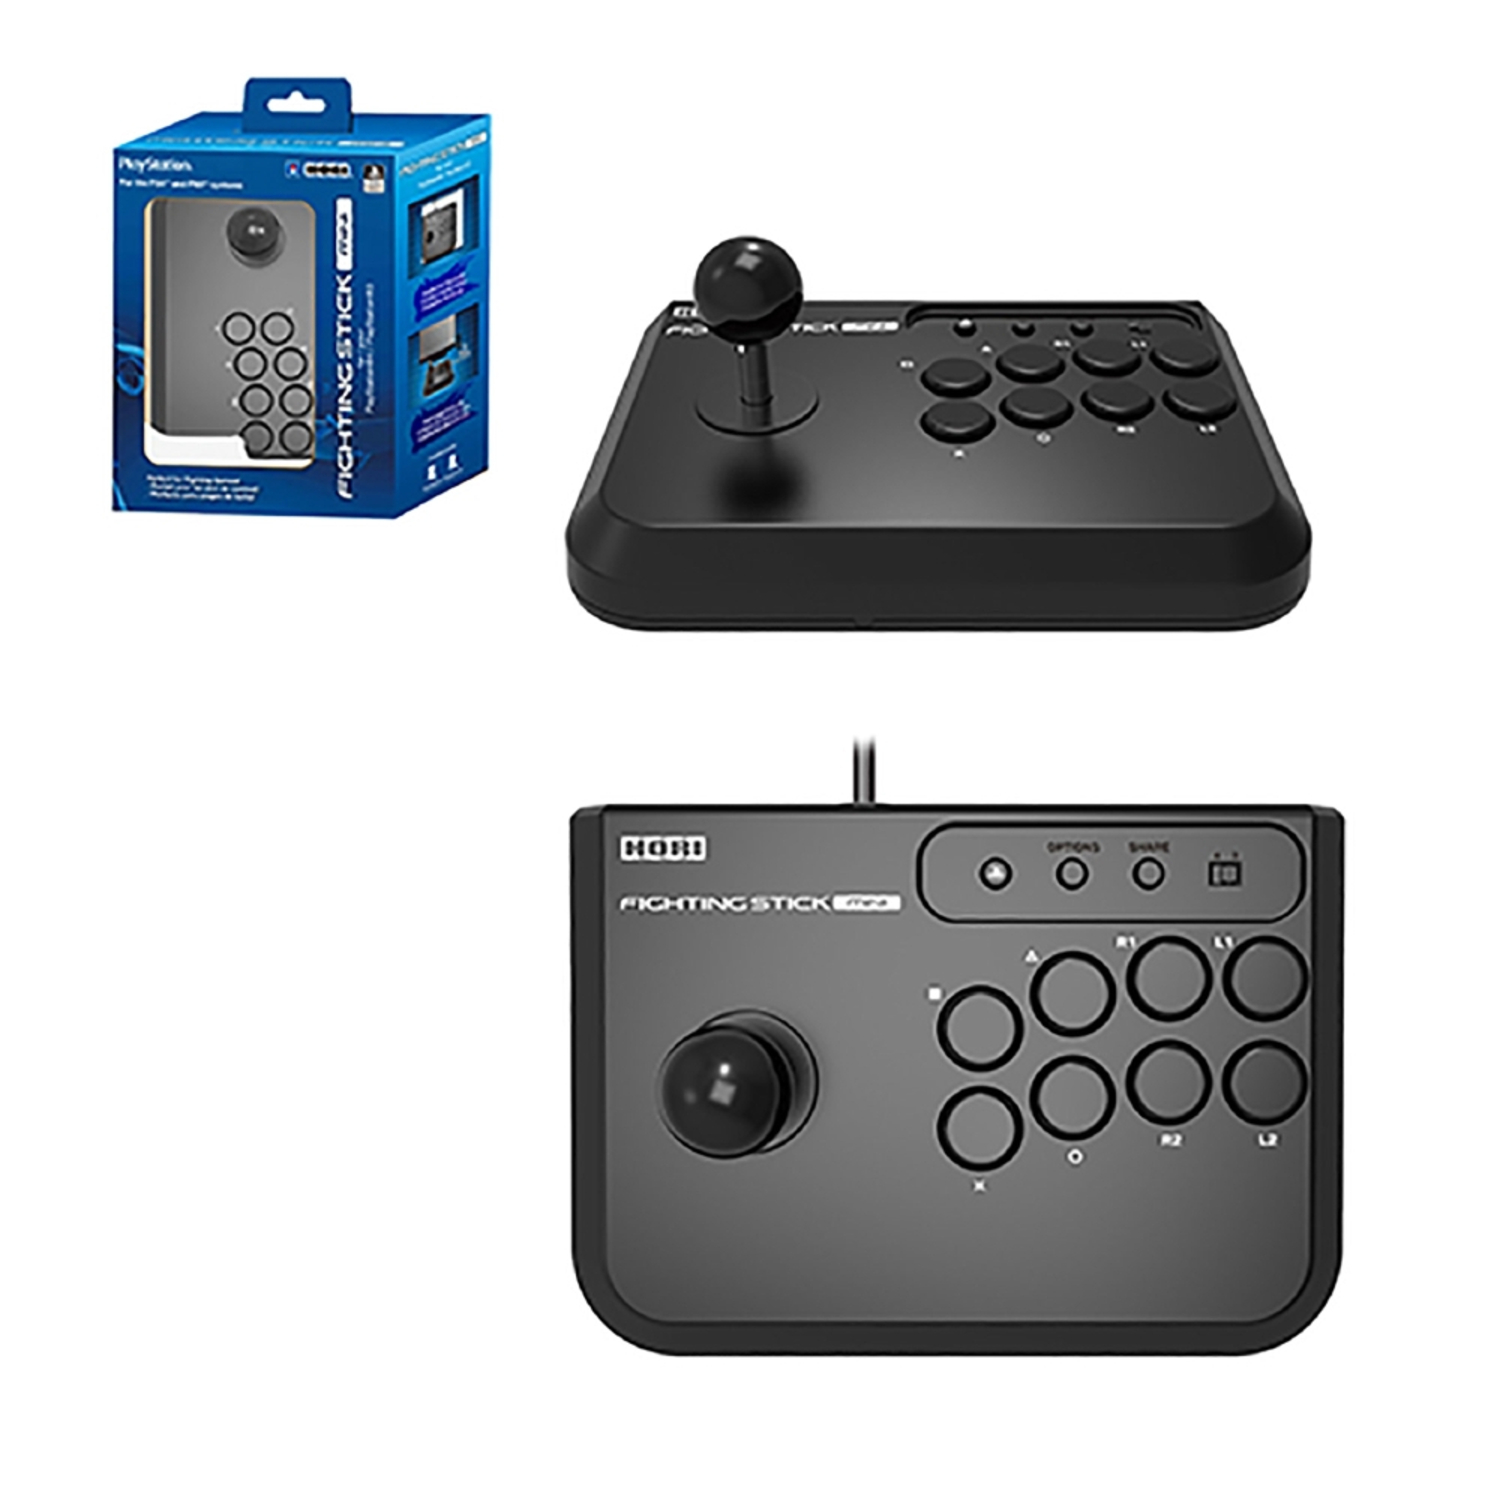 HORI FIGHTING STICK ARCADE PLAYSTATION CONTROLLER FOR PS3 PS4 VIDEO GAME MINI 4